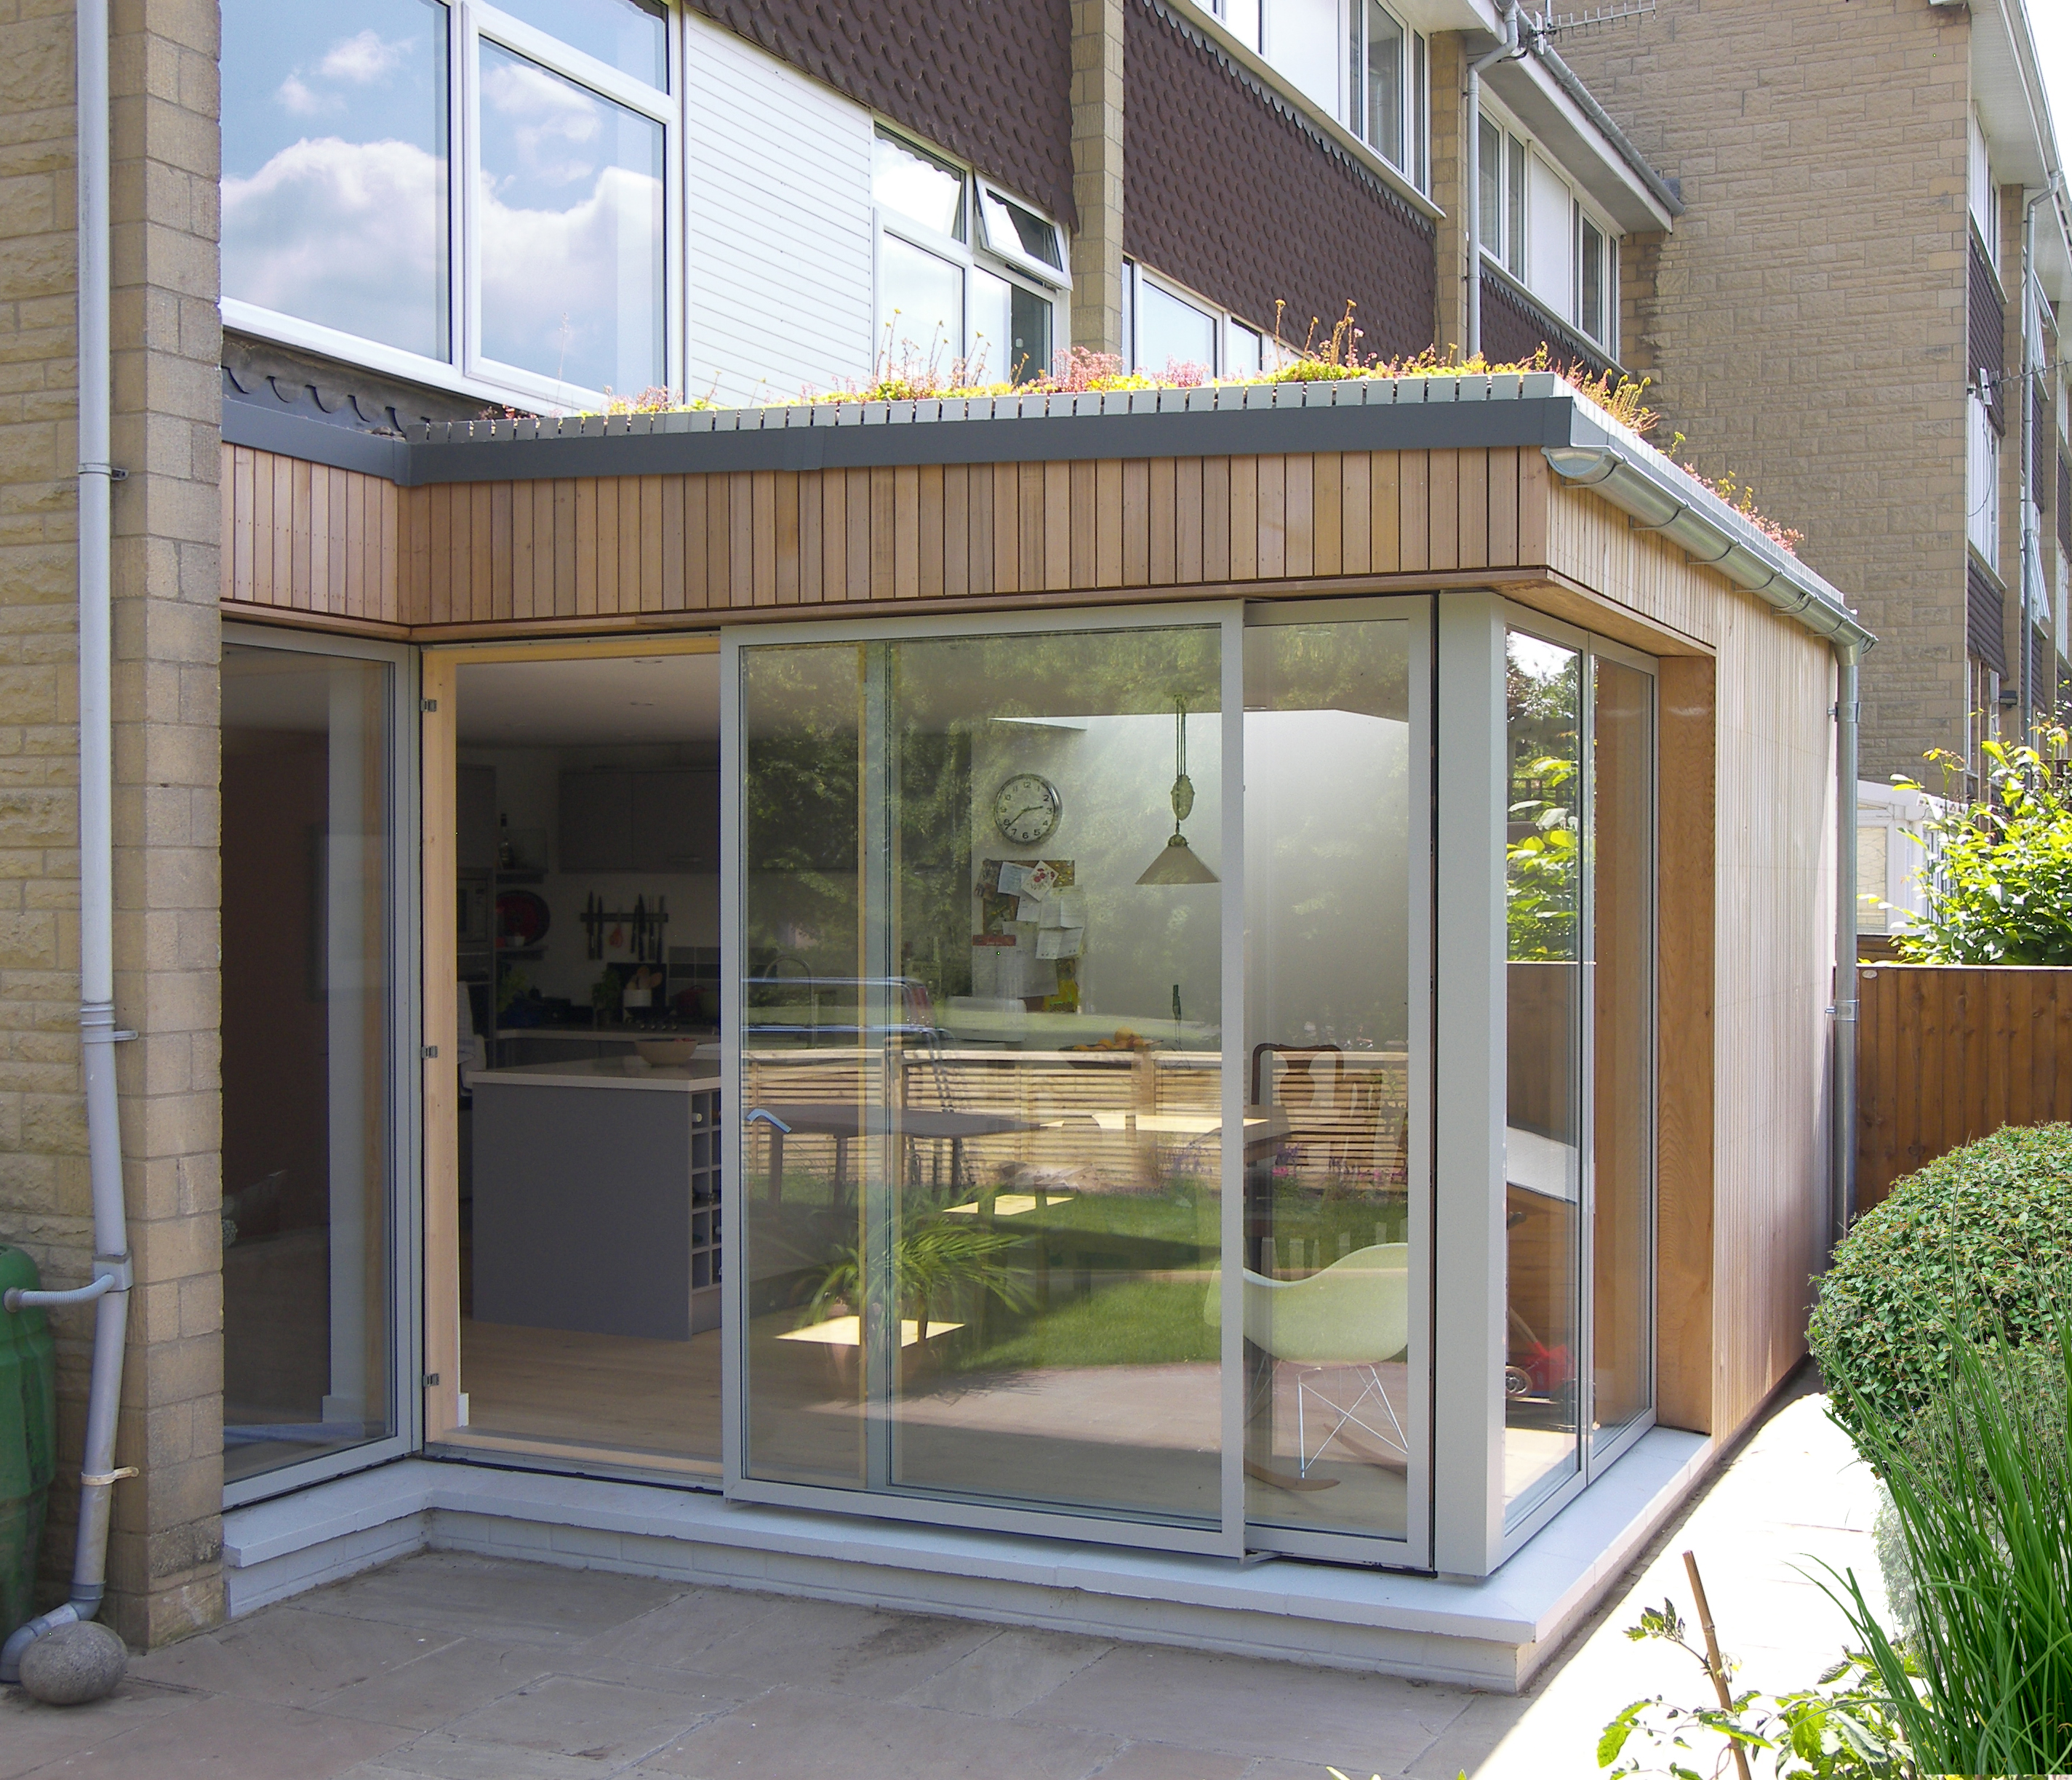 01_Eco extension to modern town house in Bristol by DHVA